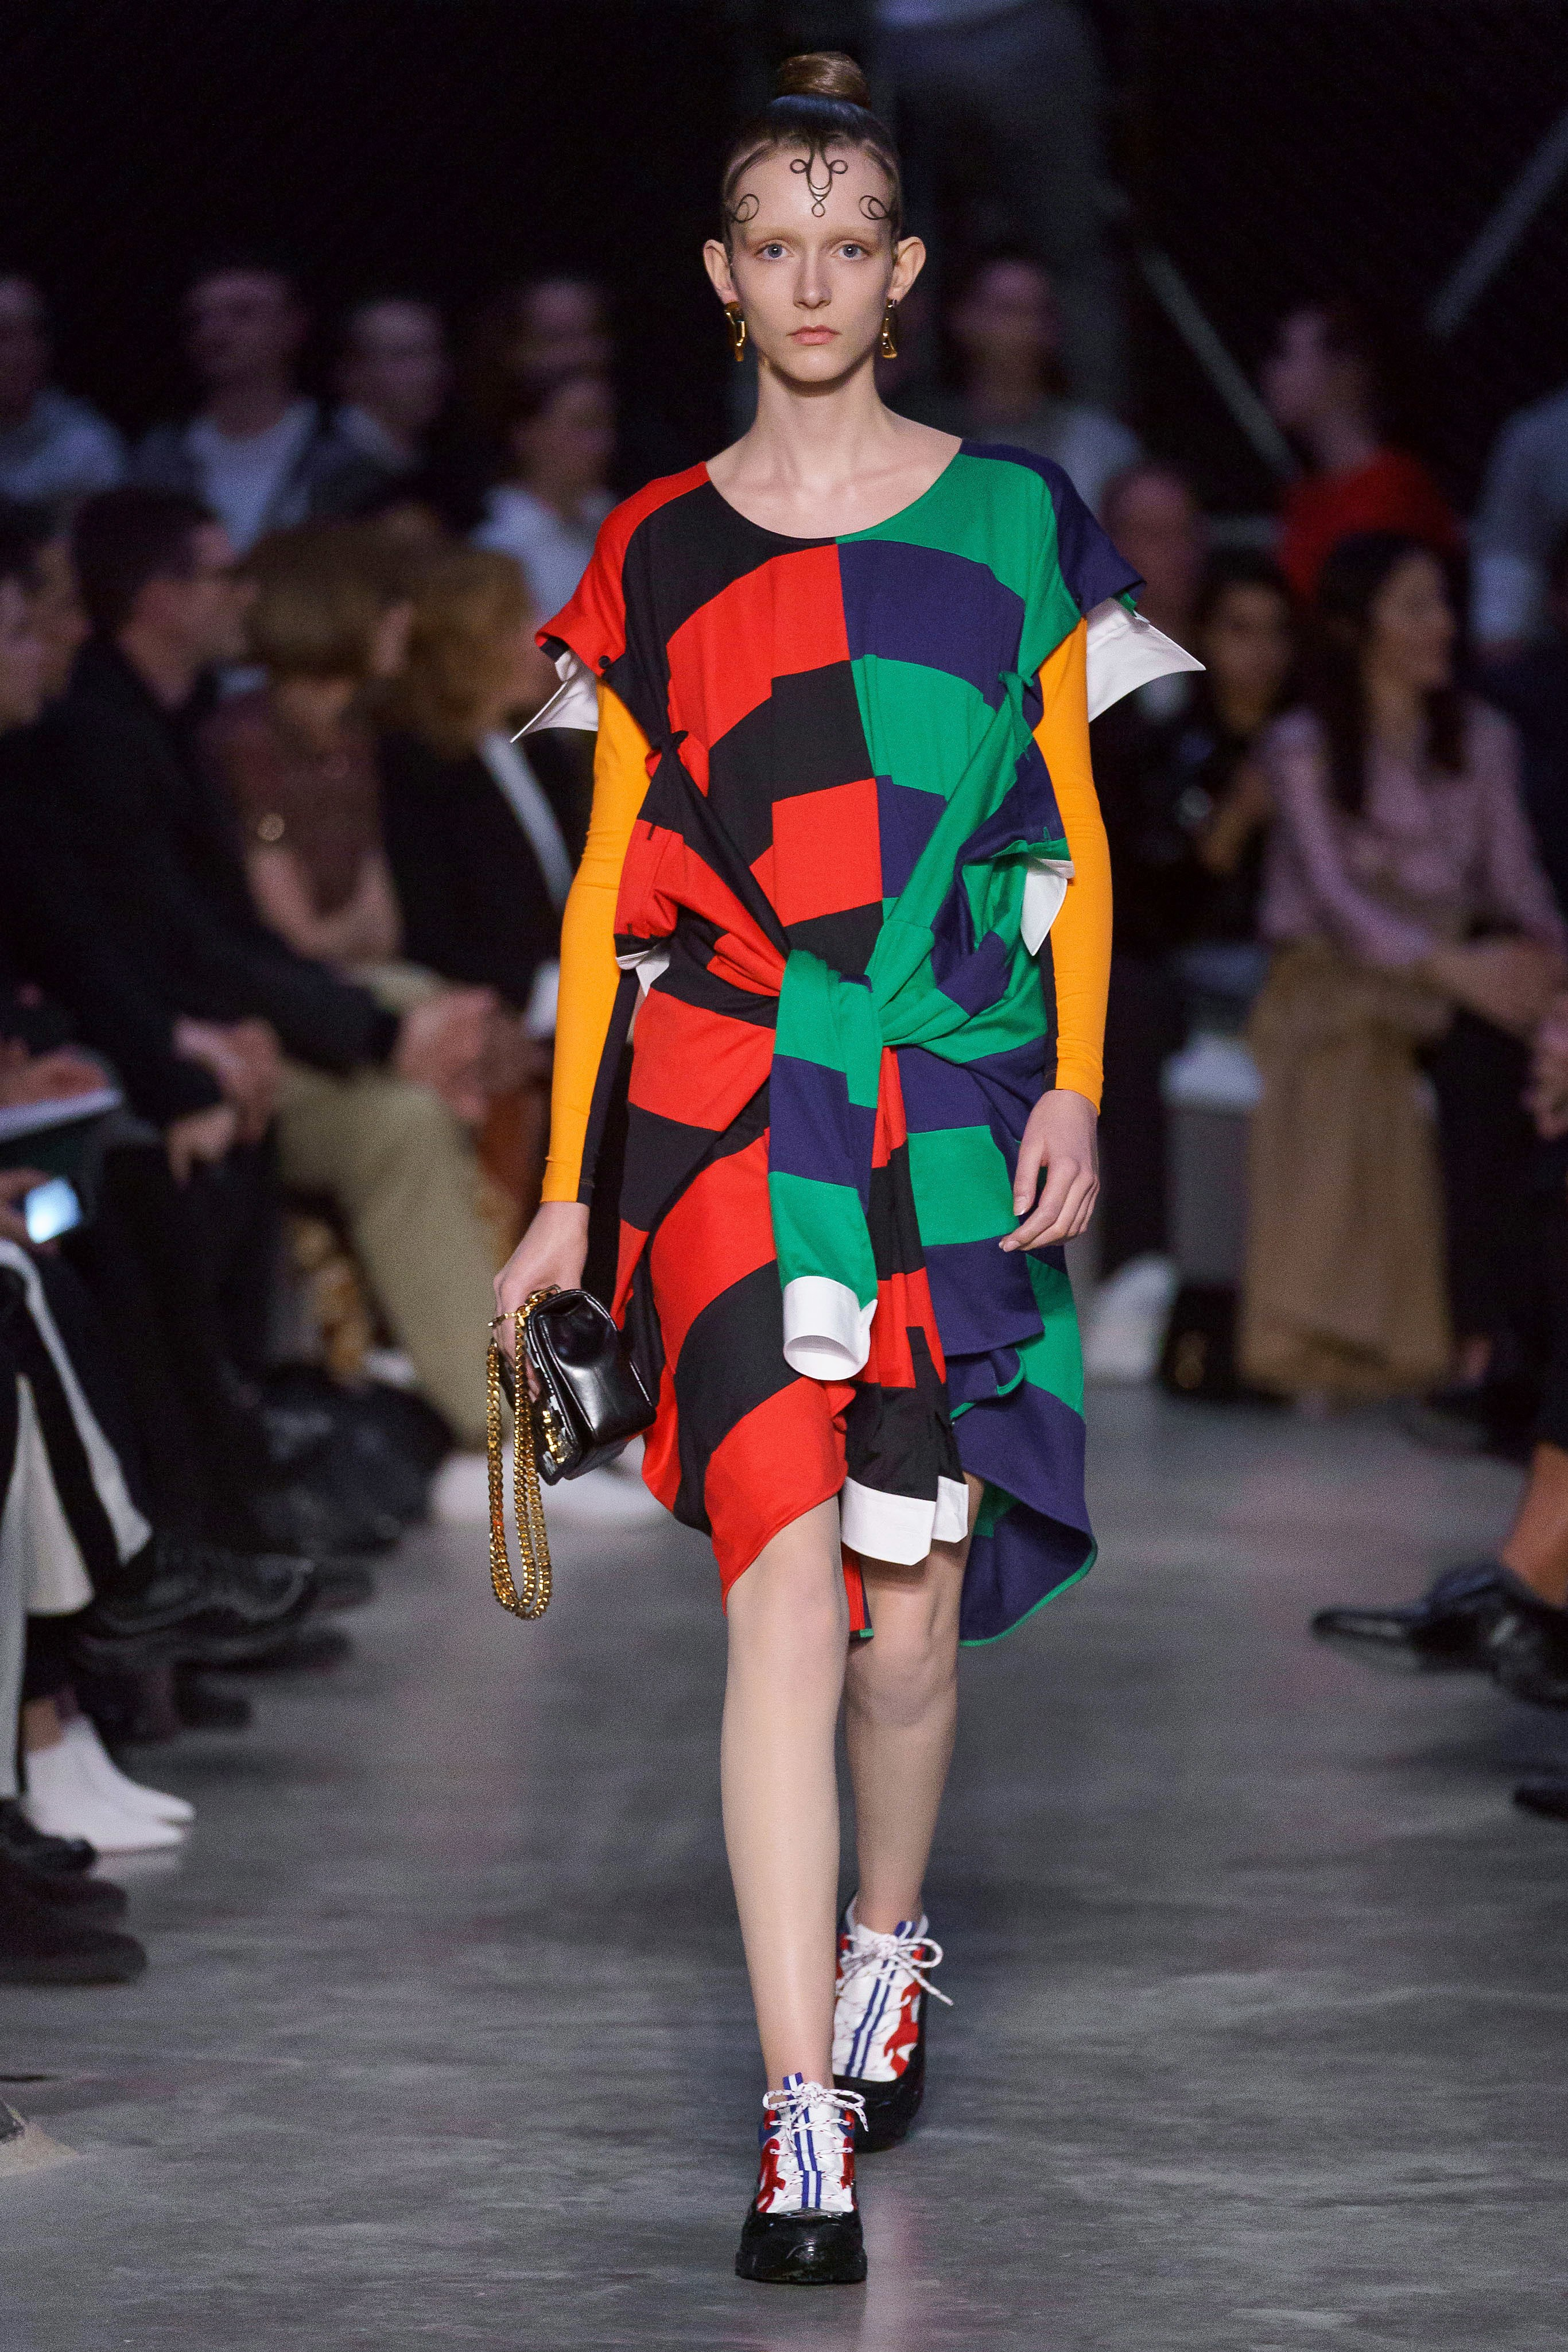 Model on the catwalk for Burberry London Fashion Week